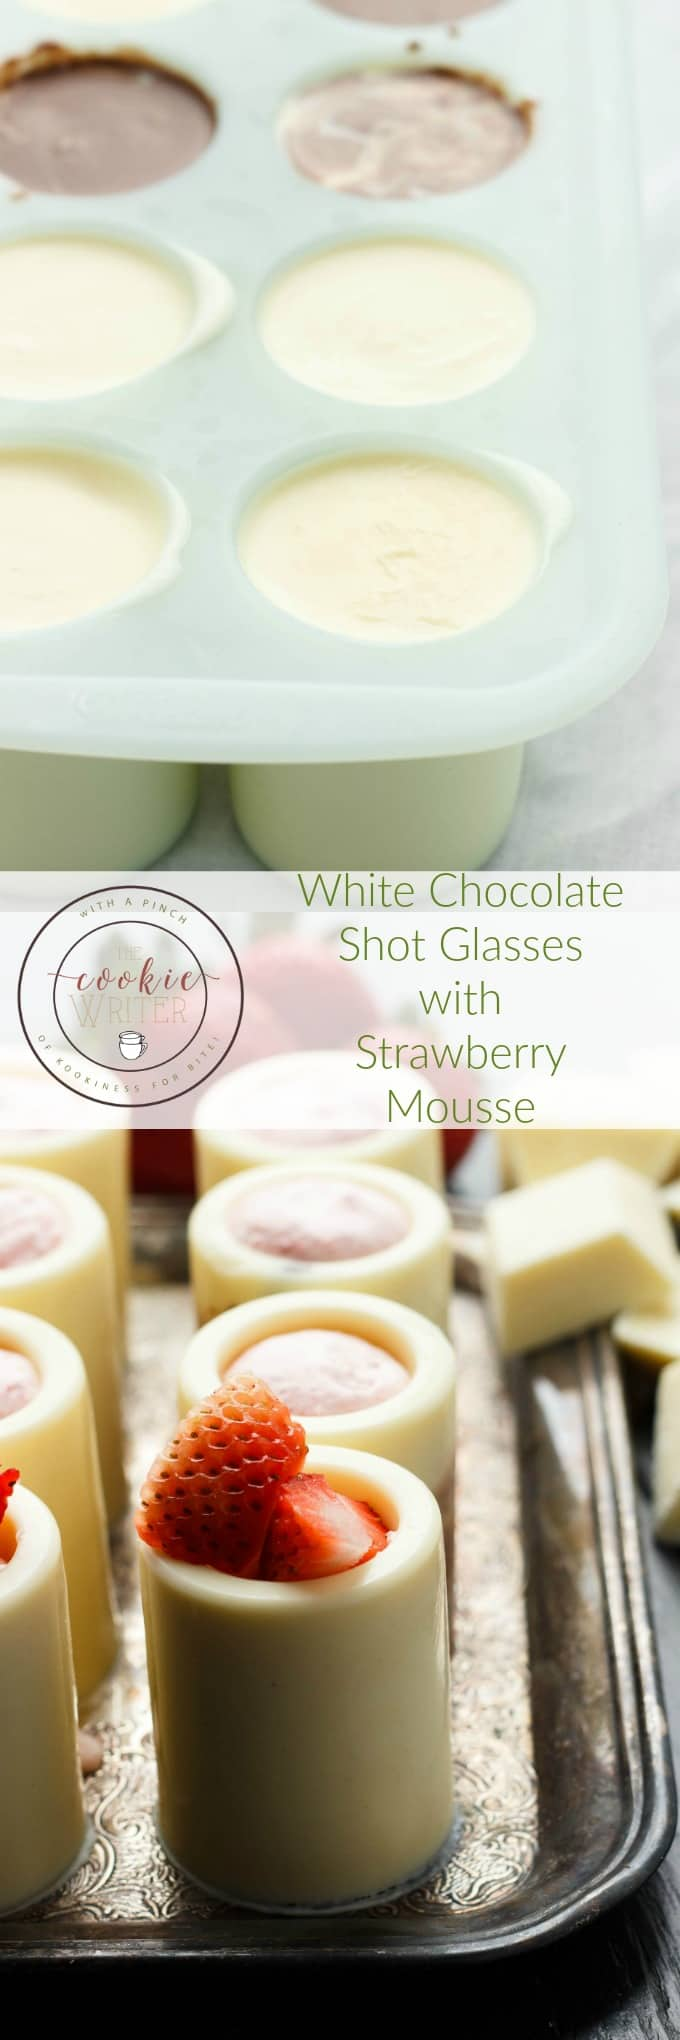 White Chocolate Shot Glasses with Strawberry Mousse